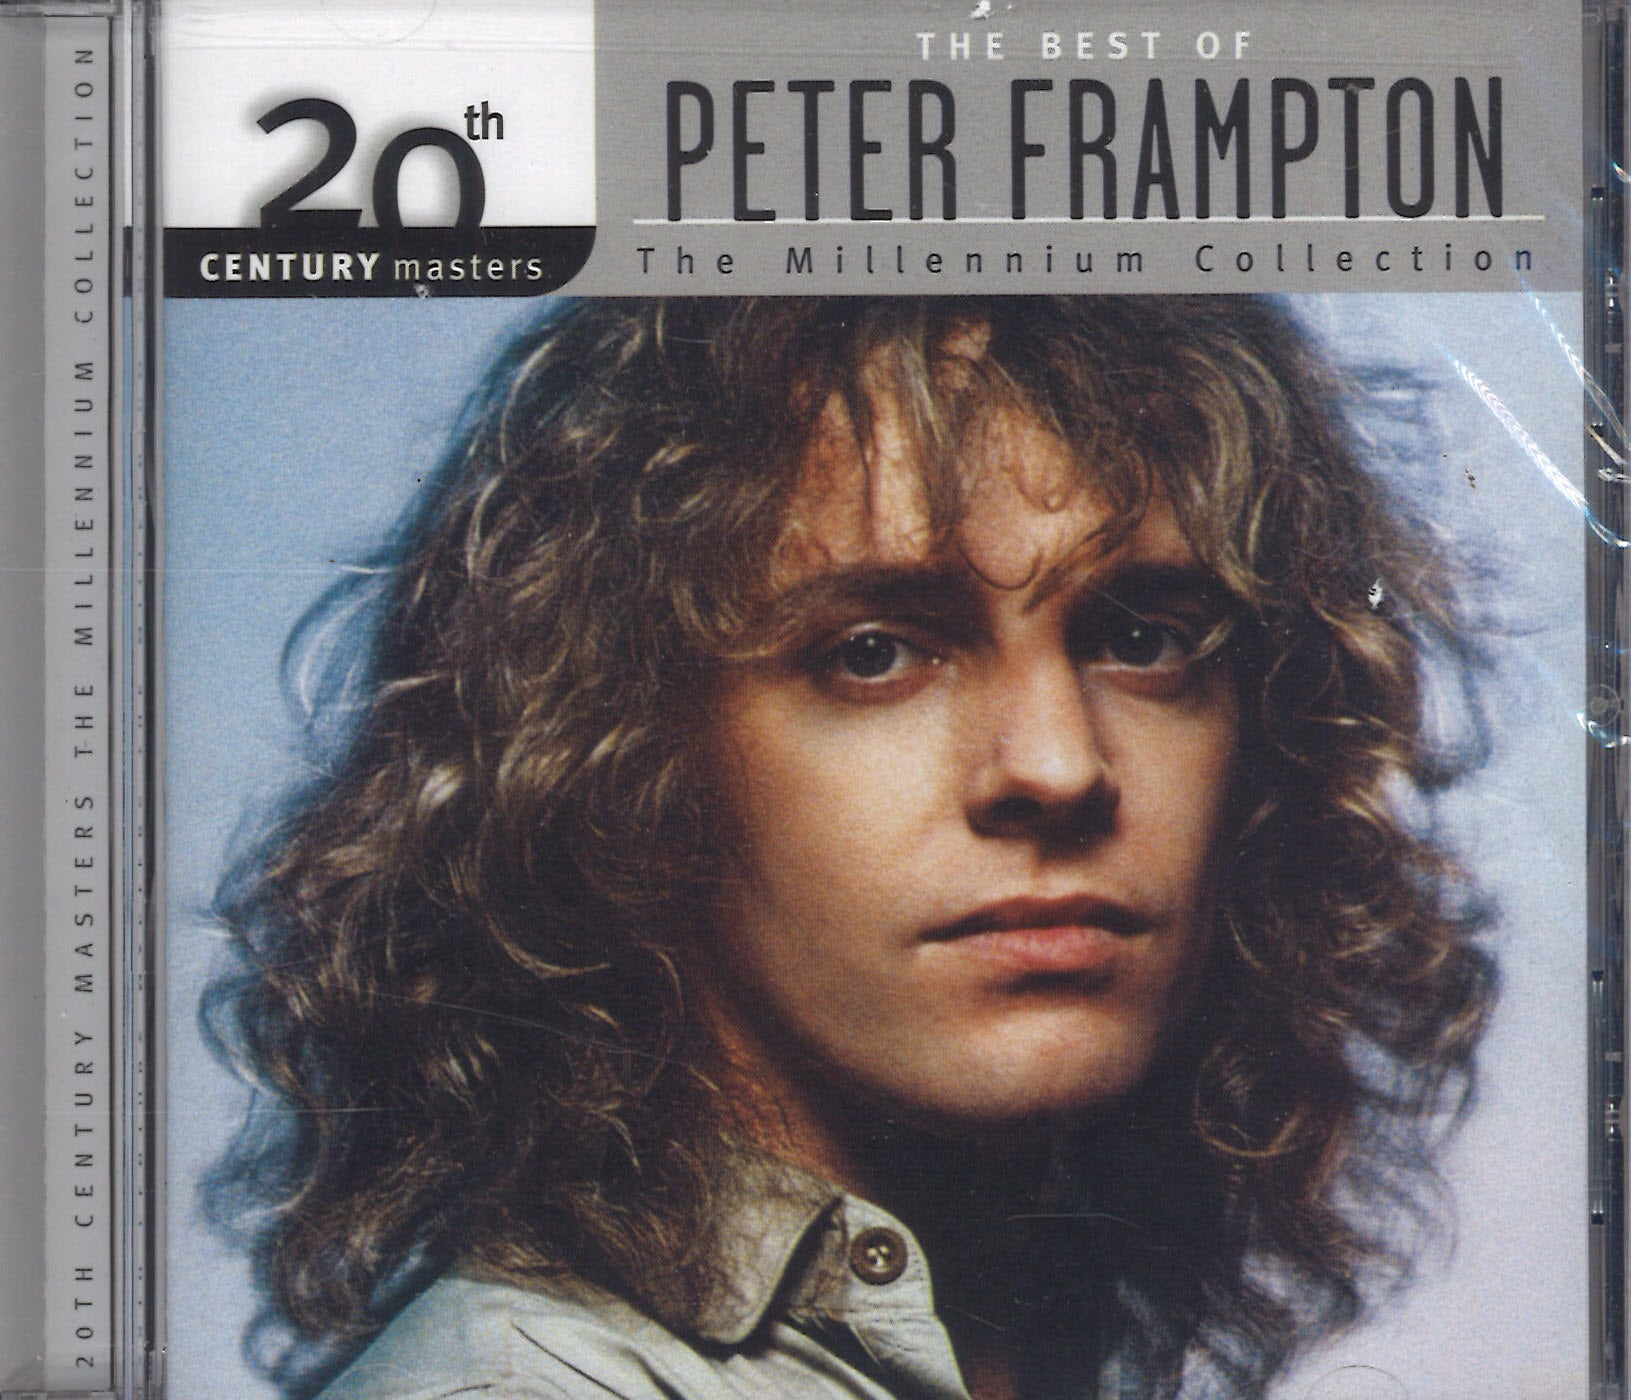 Peter Frampton The Millennium Collection